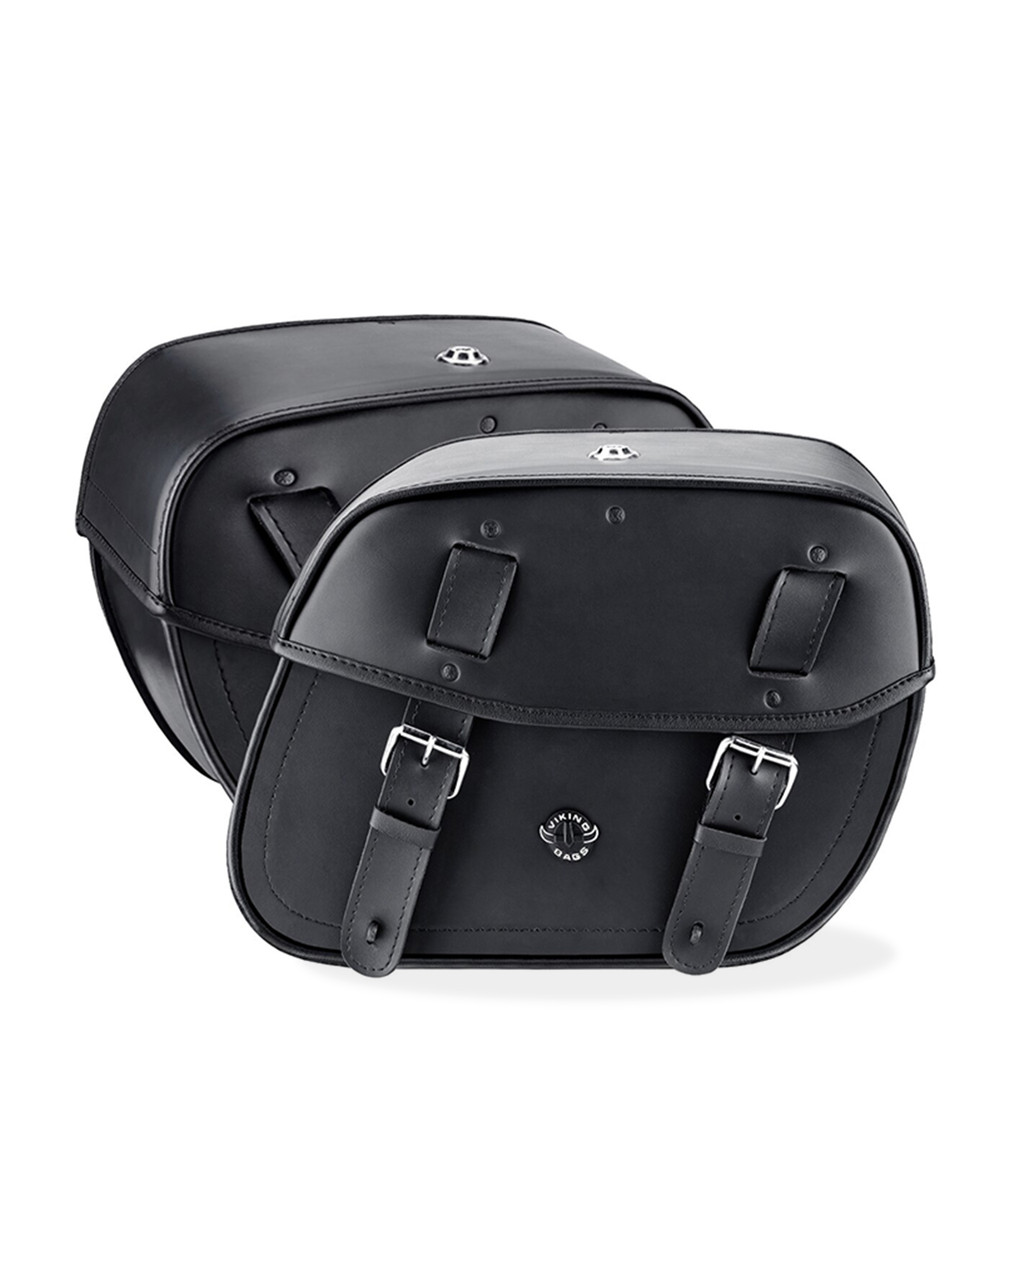 VikingBags Specific Medium Double Strap Shock Cutout Motorcycle Saddlebags For Harley Dyna Low Rider FXDL Both Bags View